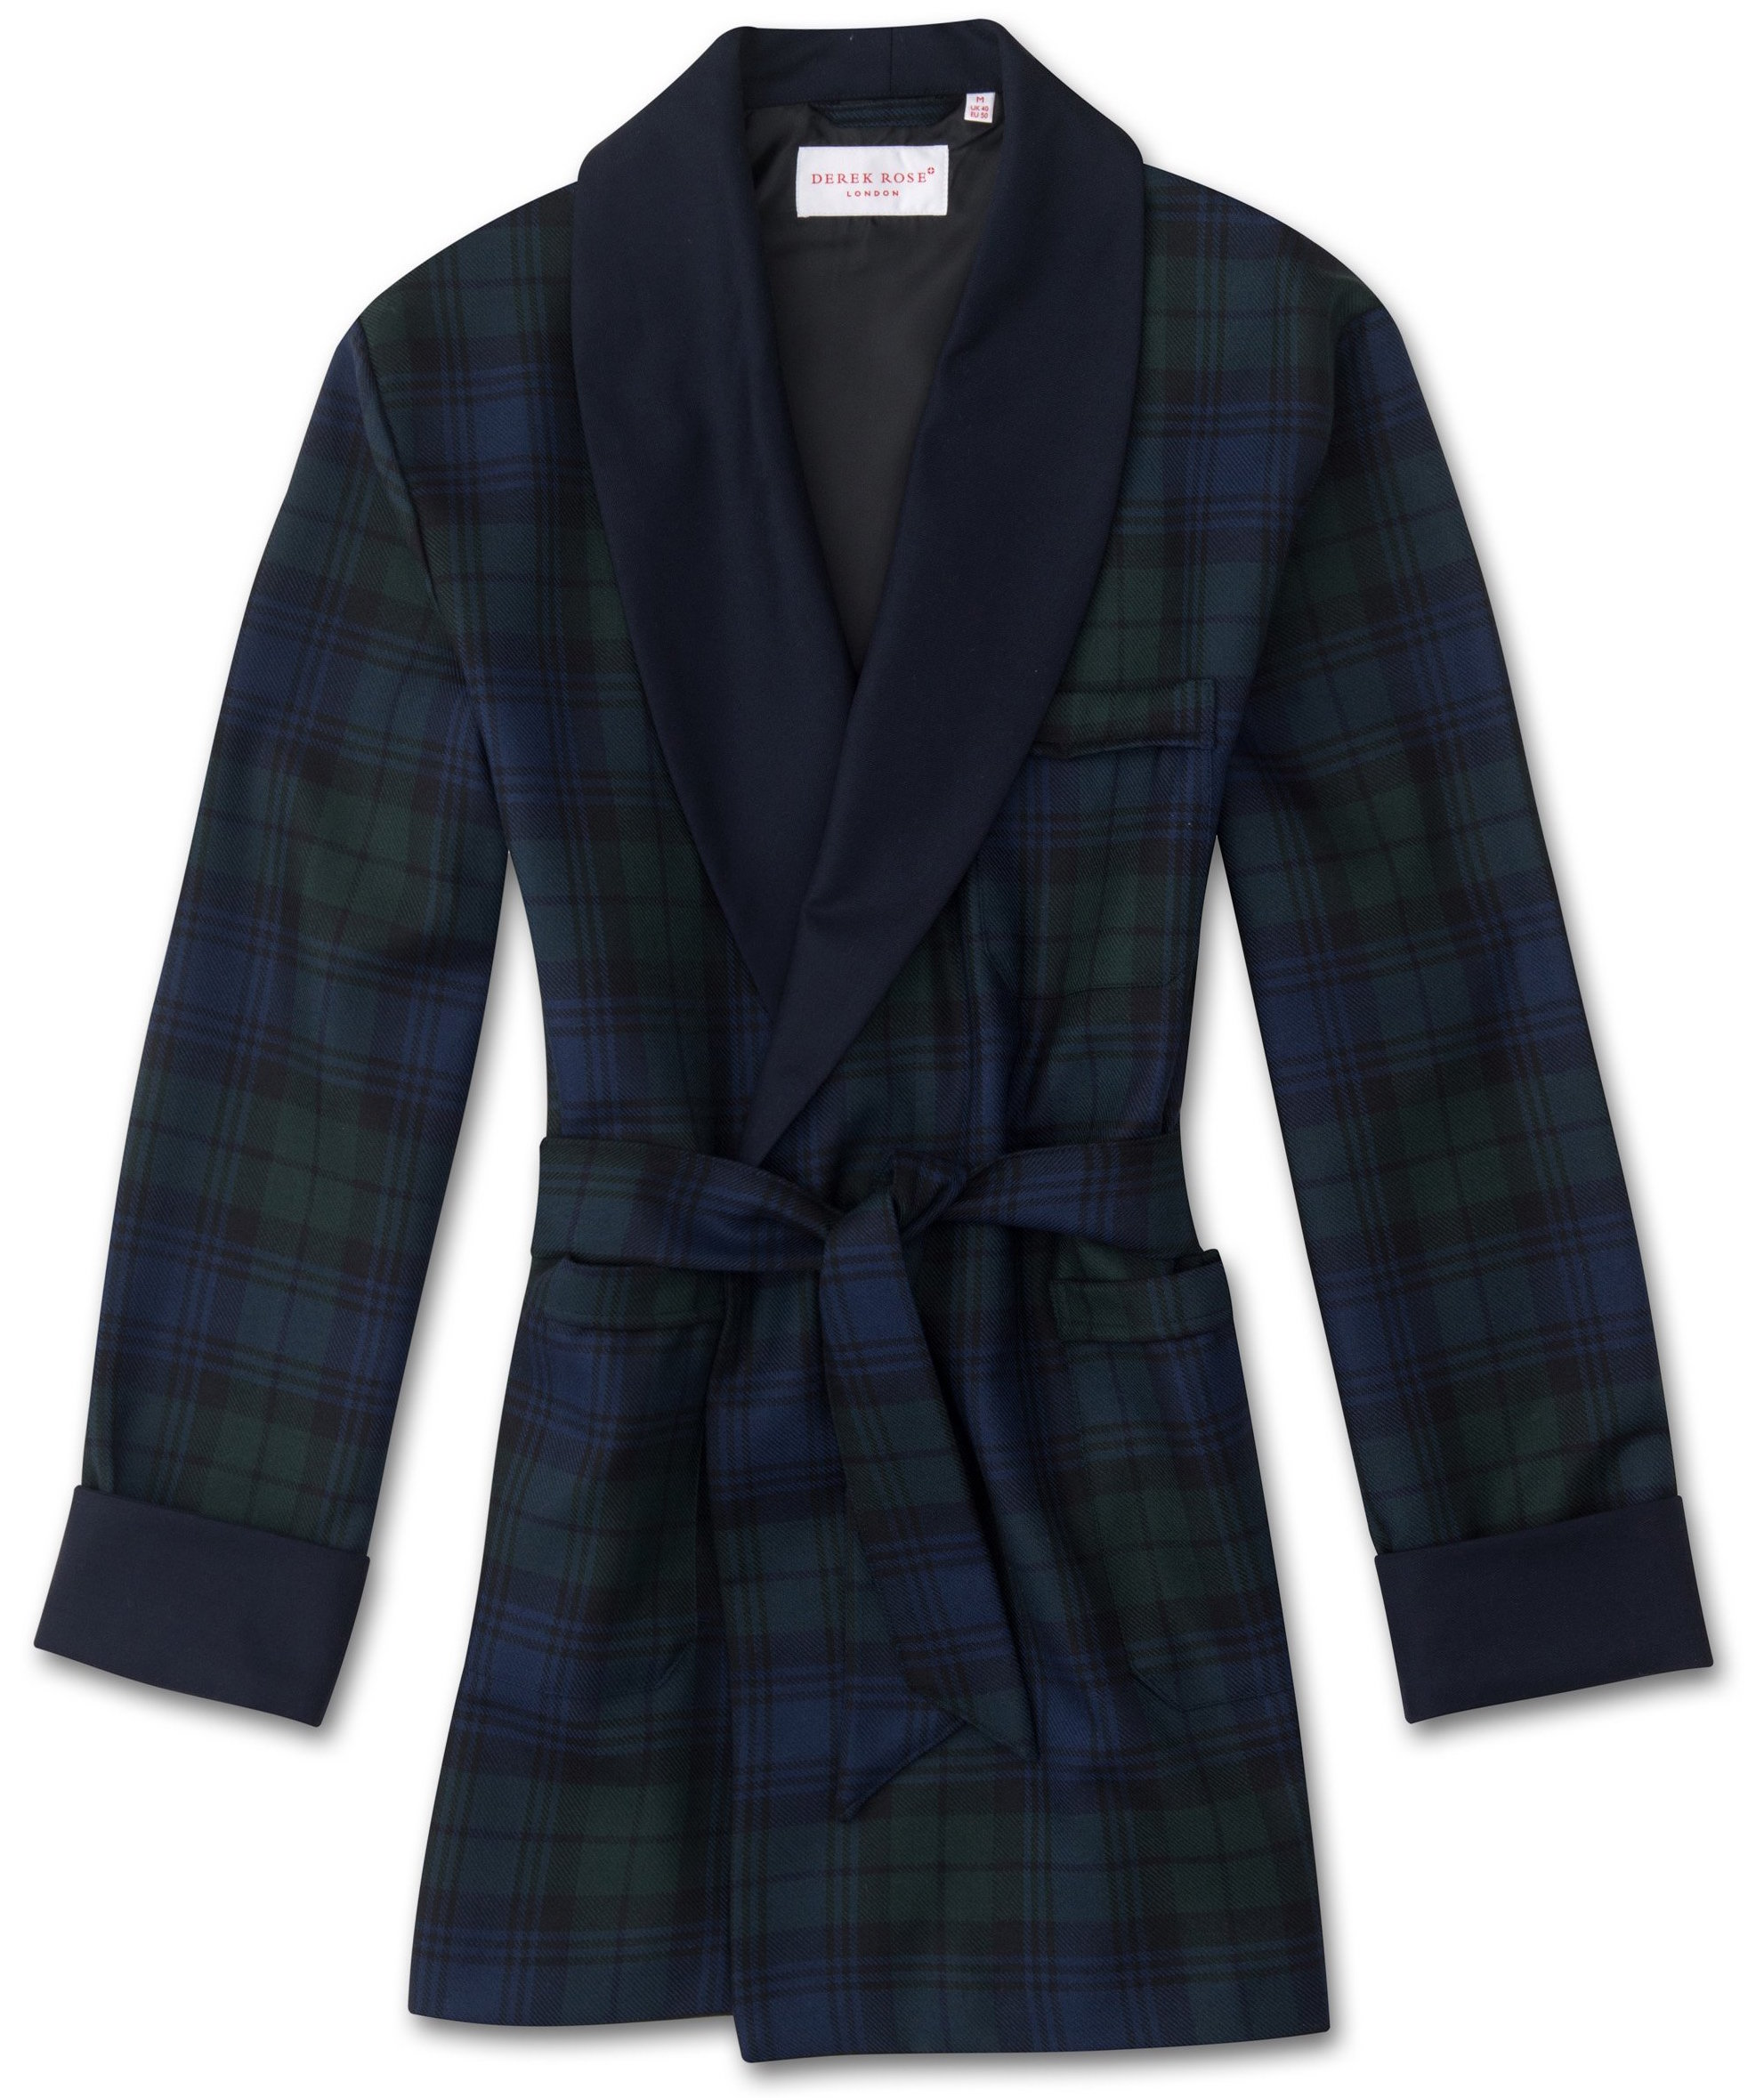 smoking jacket scottish pattern